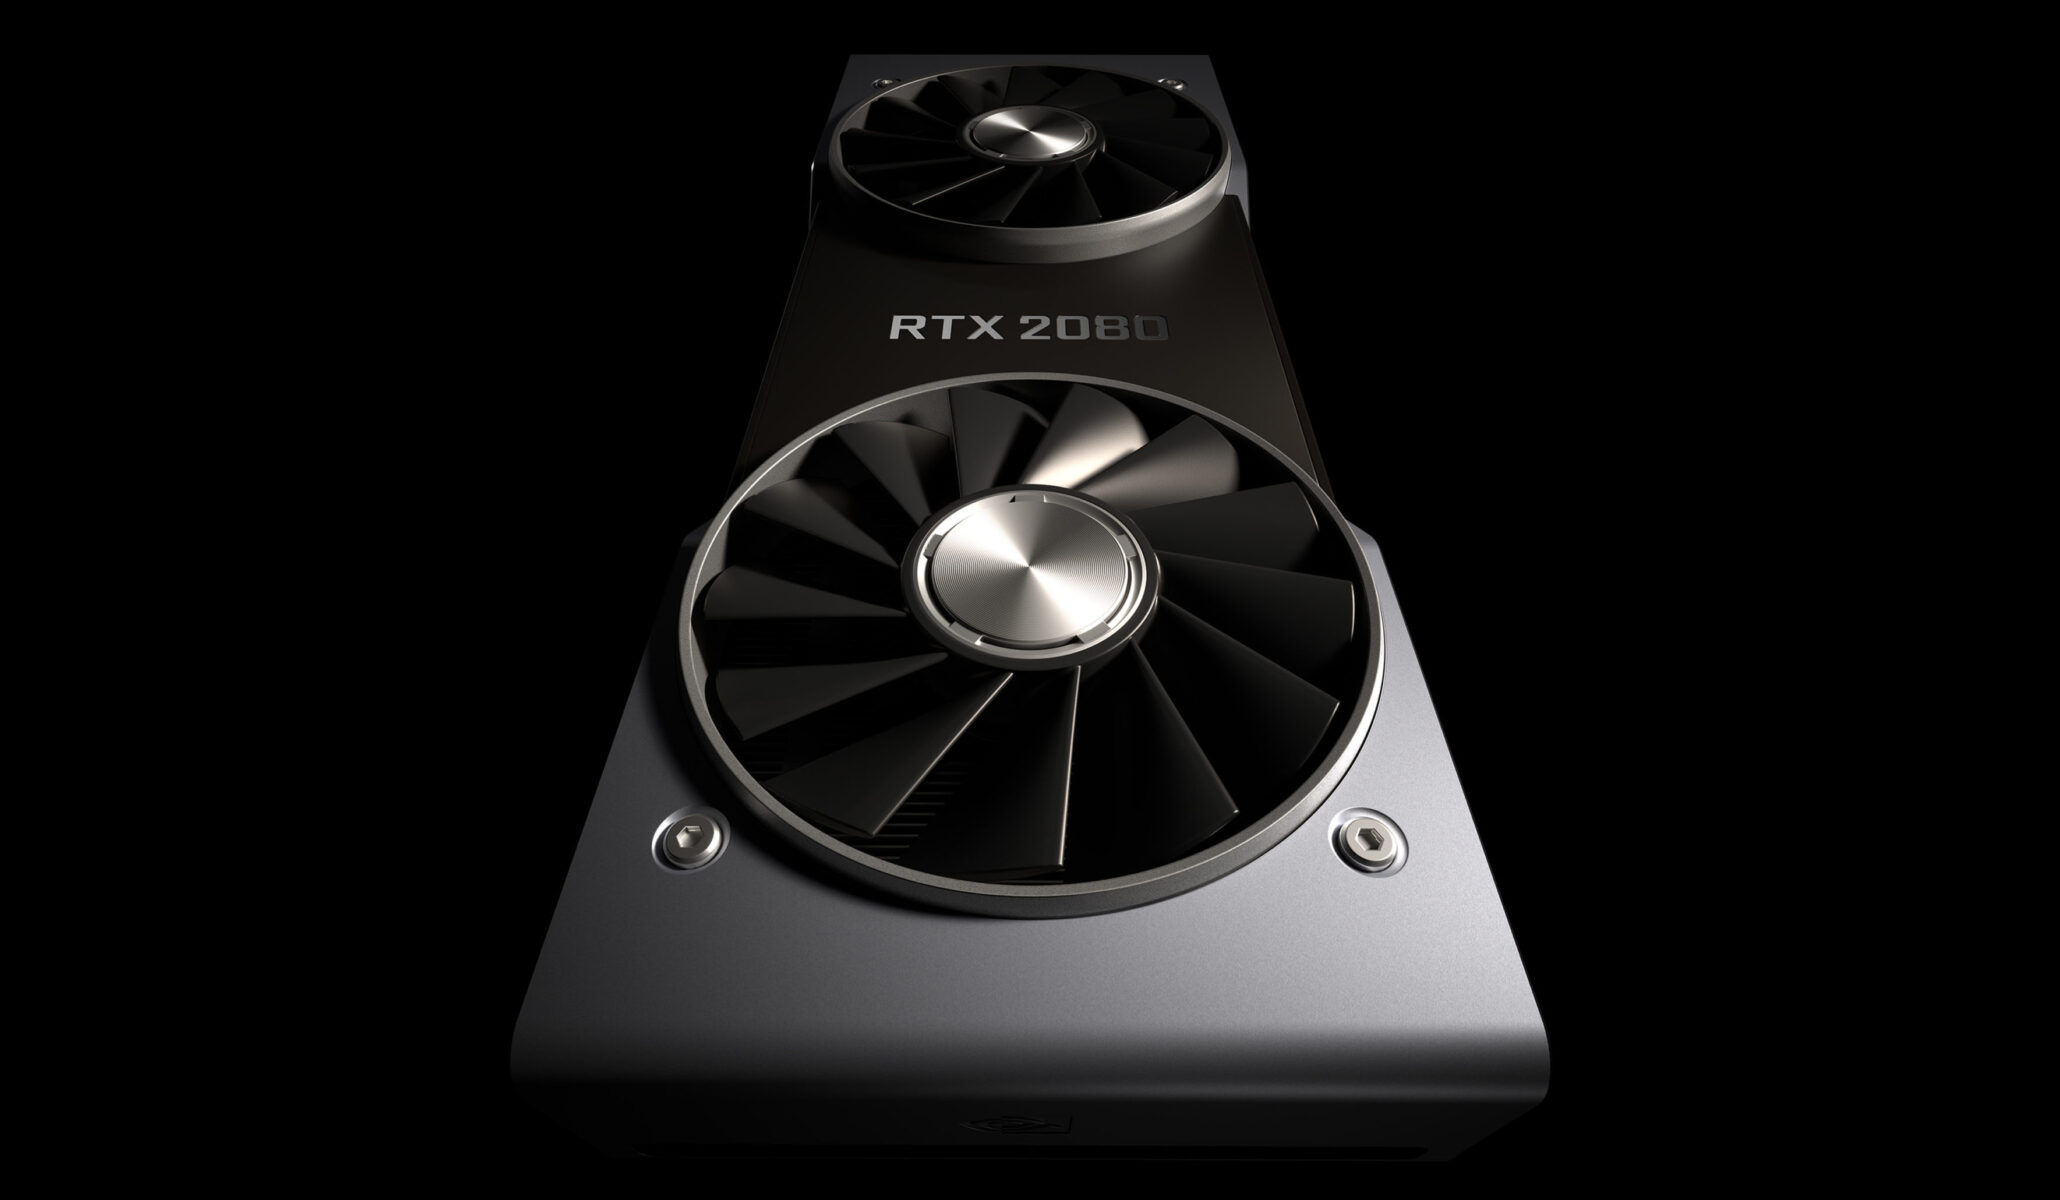 NVIDIA GeForce RTX 2080 3DMark TimeSpy Score Leaked - Clocked At